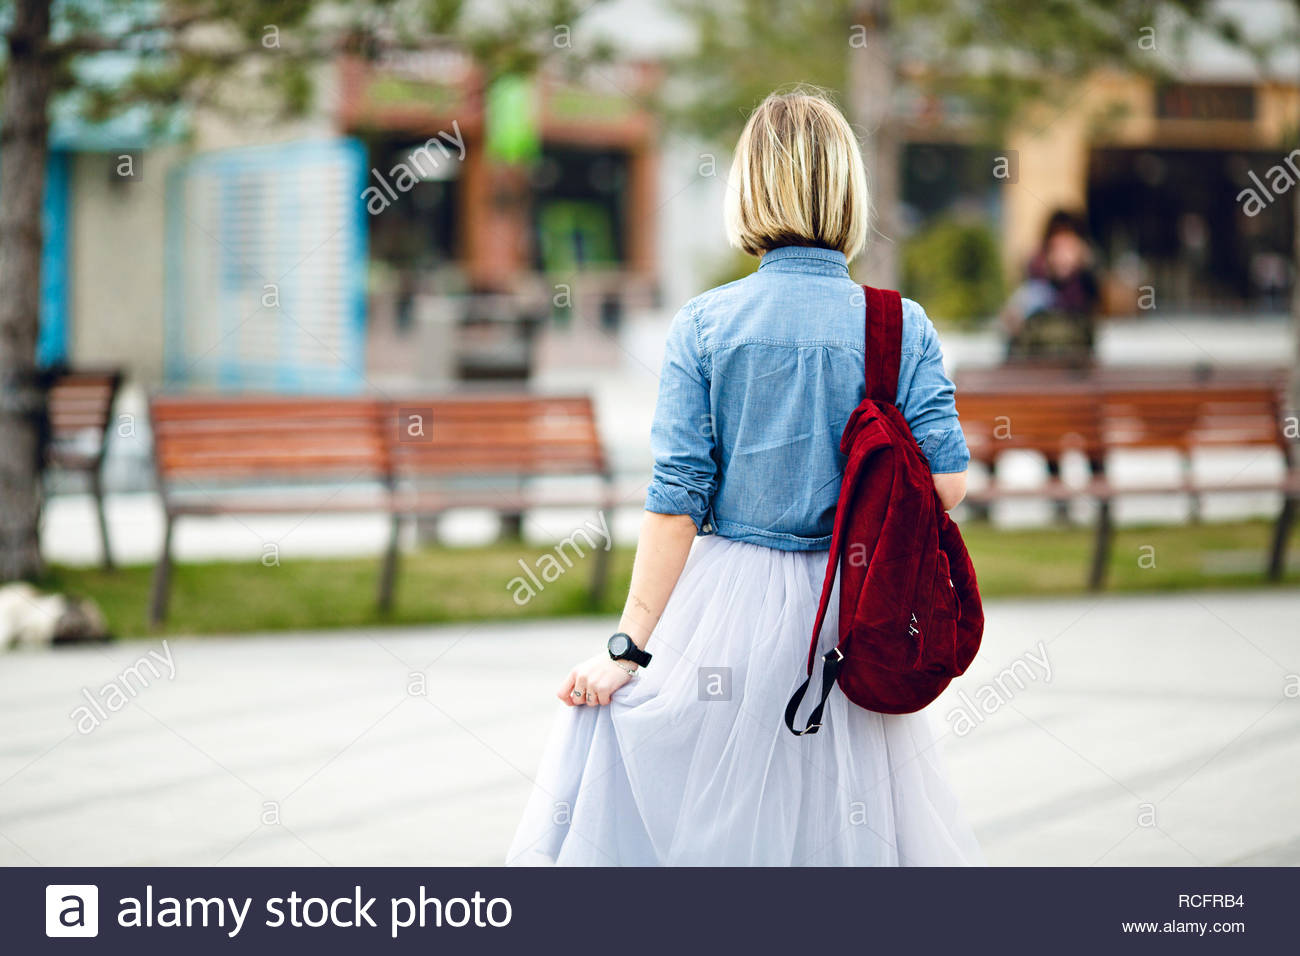 5ff52348df A portrait of the back of a girl holding marsala backpack wearing blue  denim shirt and grey tulle skirt. A girl walks in a city park with wooden  benches and ...